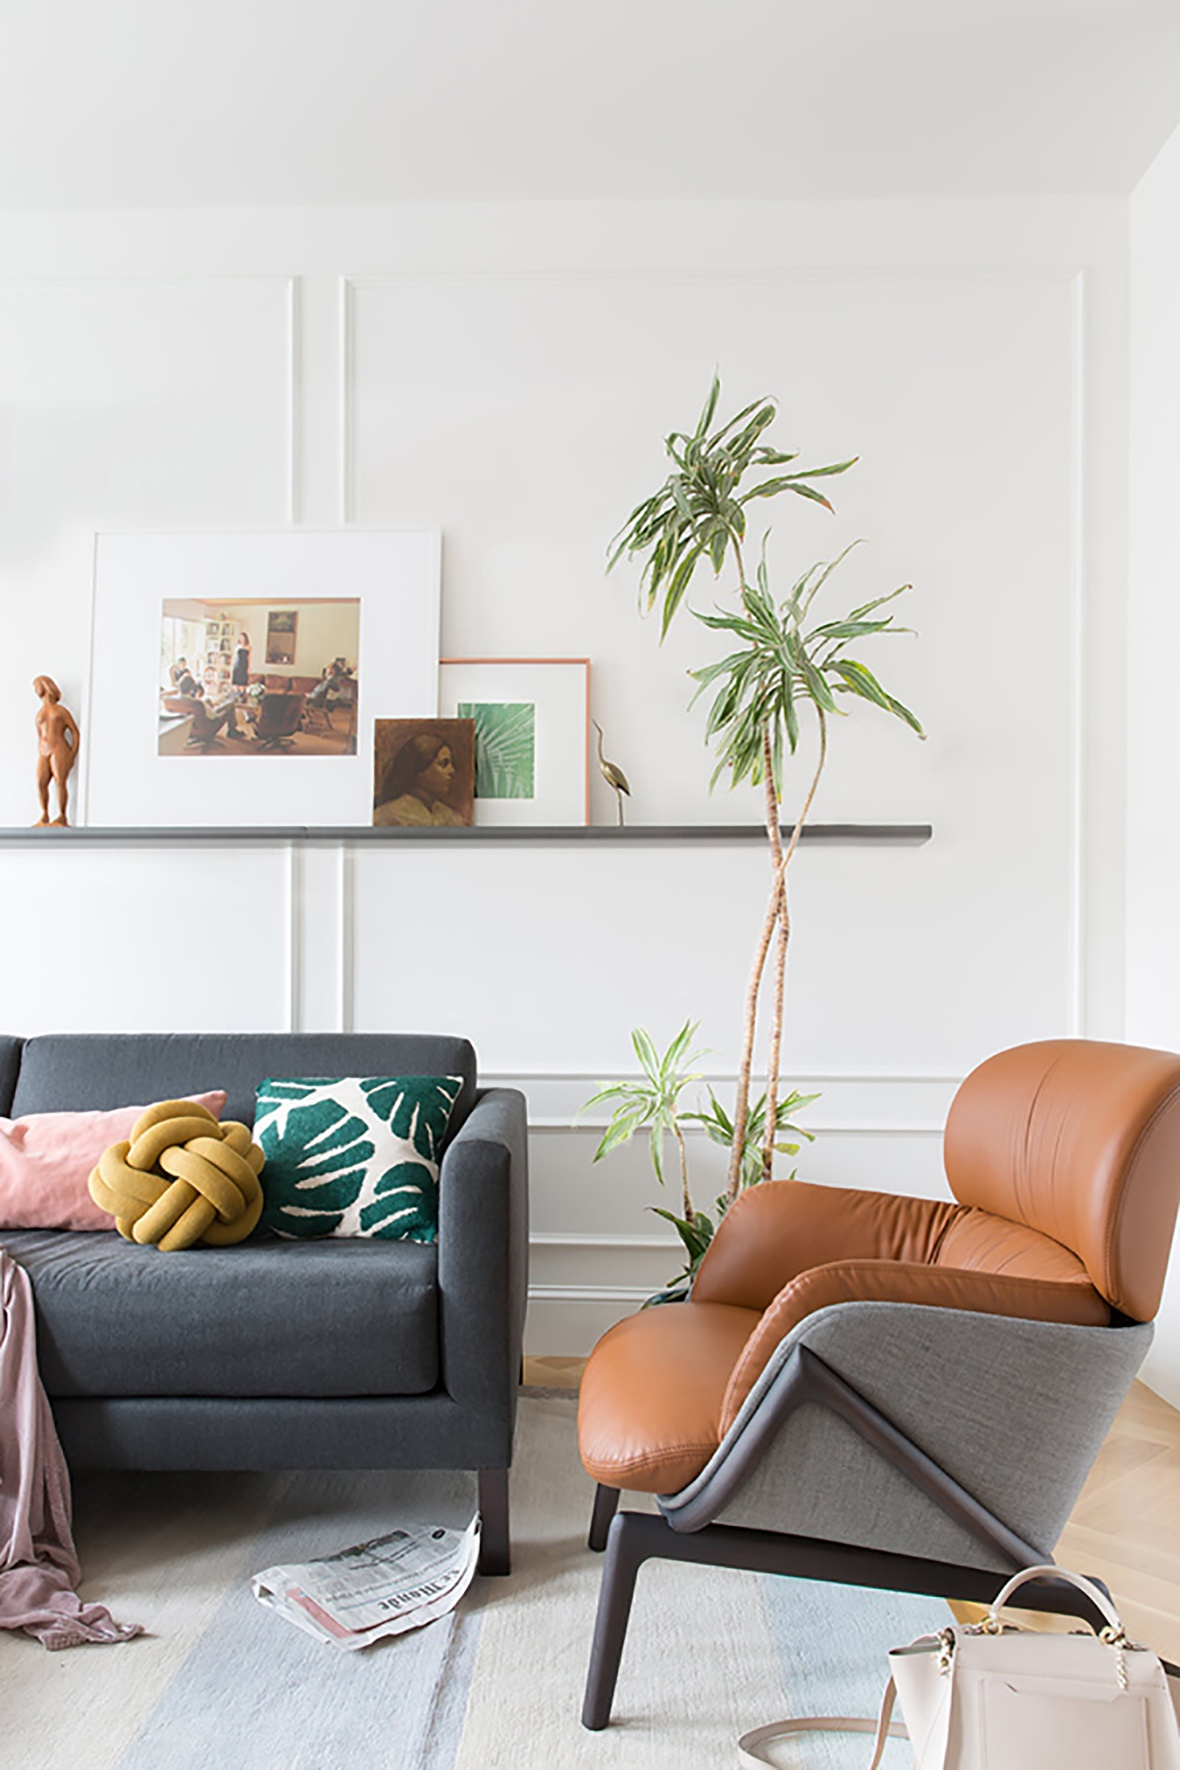 06-some-ledges-are-used-to-display-artworks-and-a-comfy-leather-chair-is-a-great-piece_01